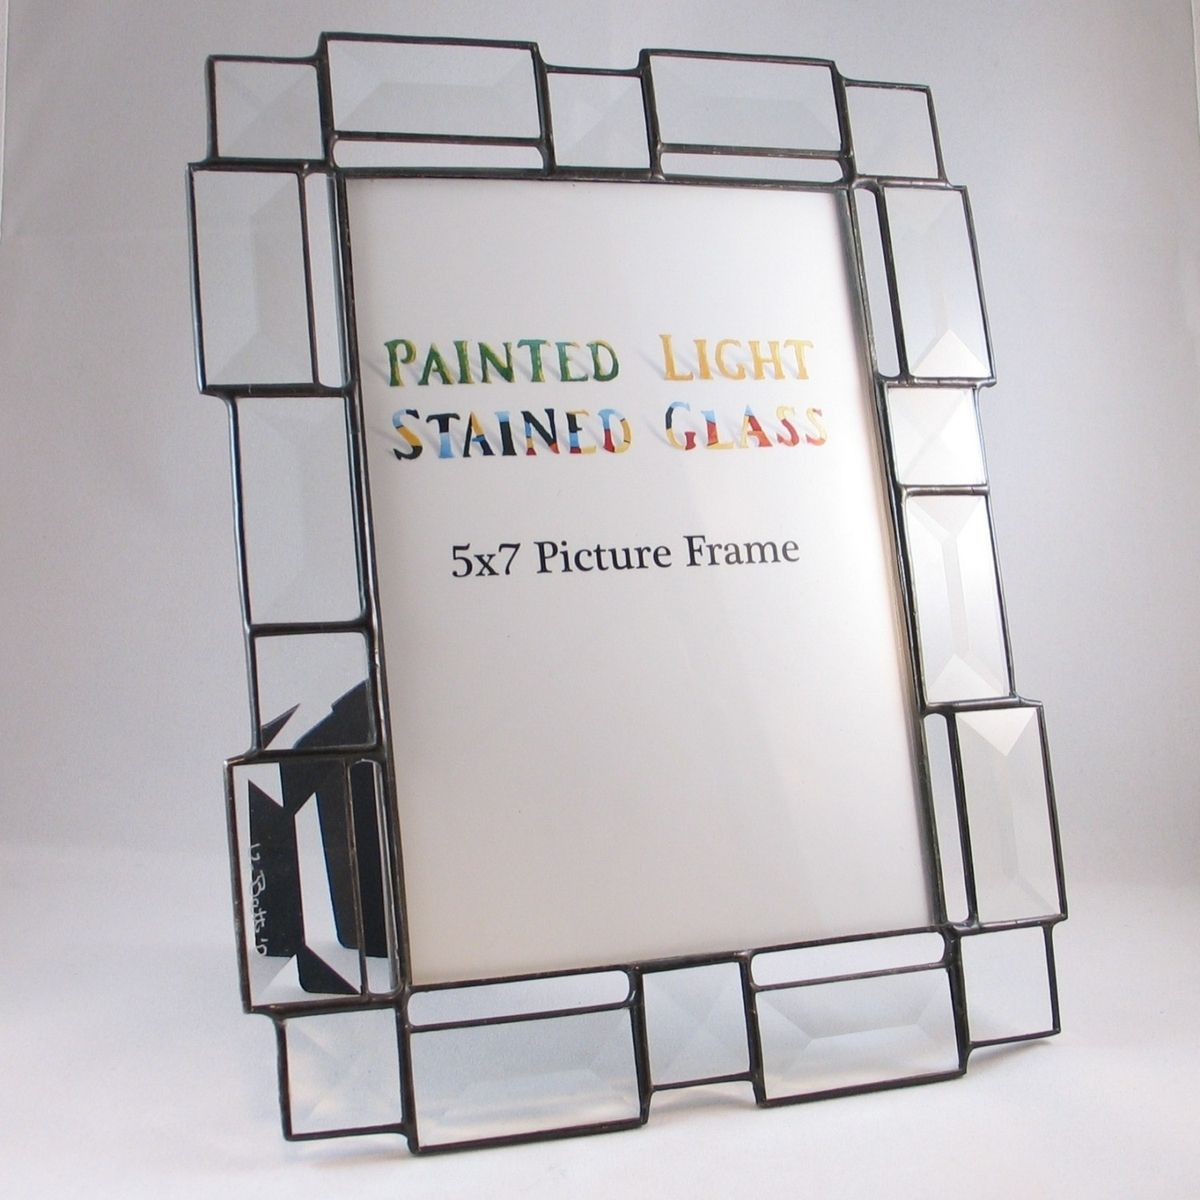 Custom Made 5x7 Stained Glass Bevel Picture Frame By Painted Light